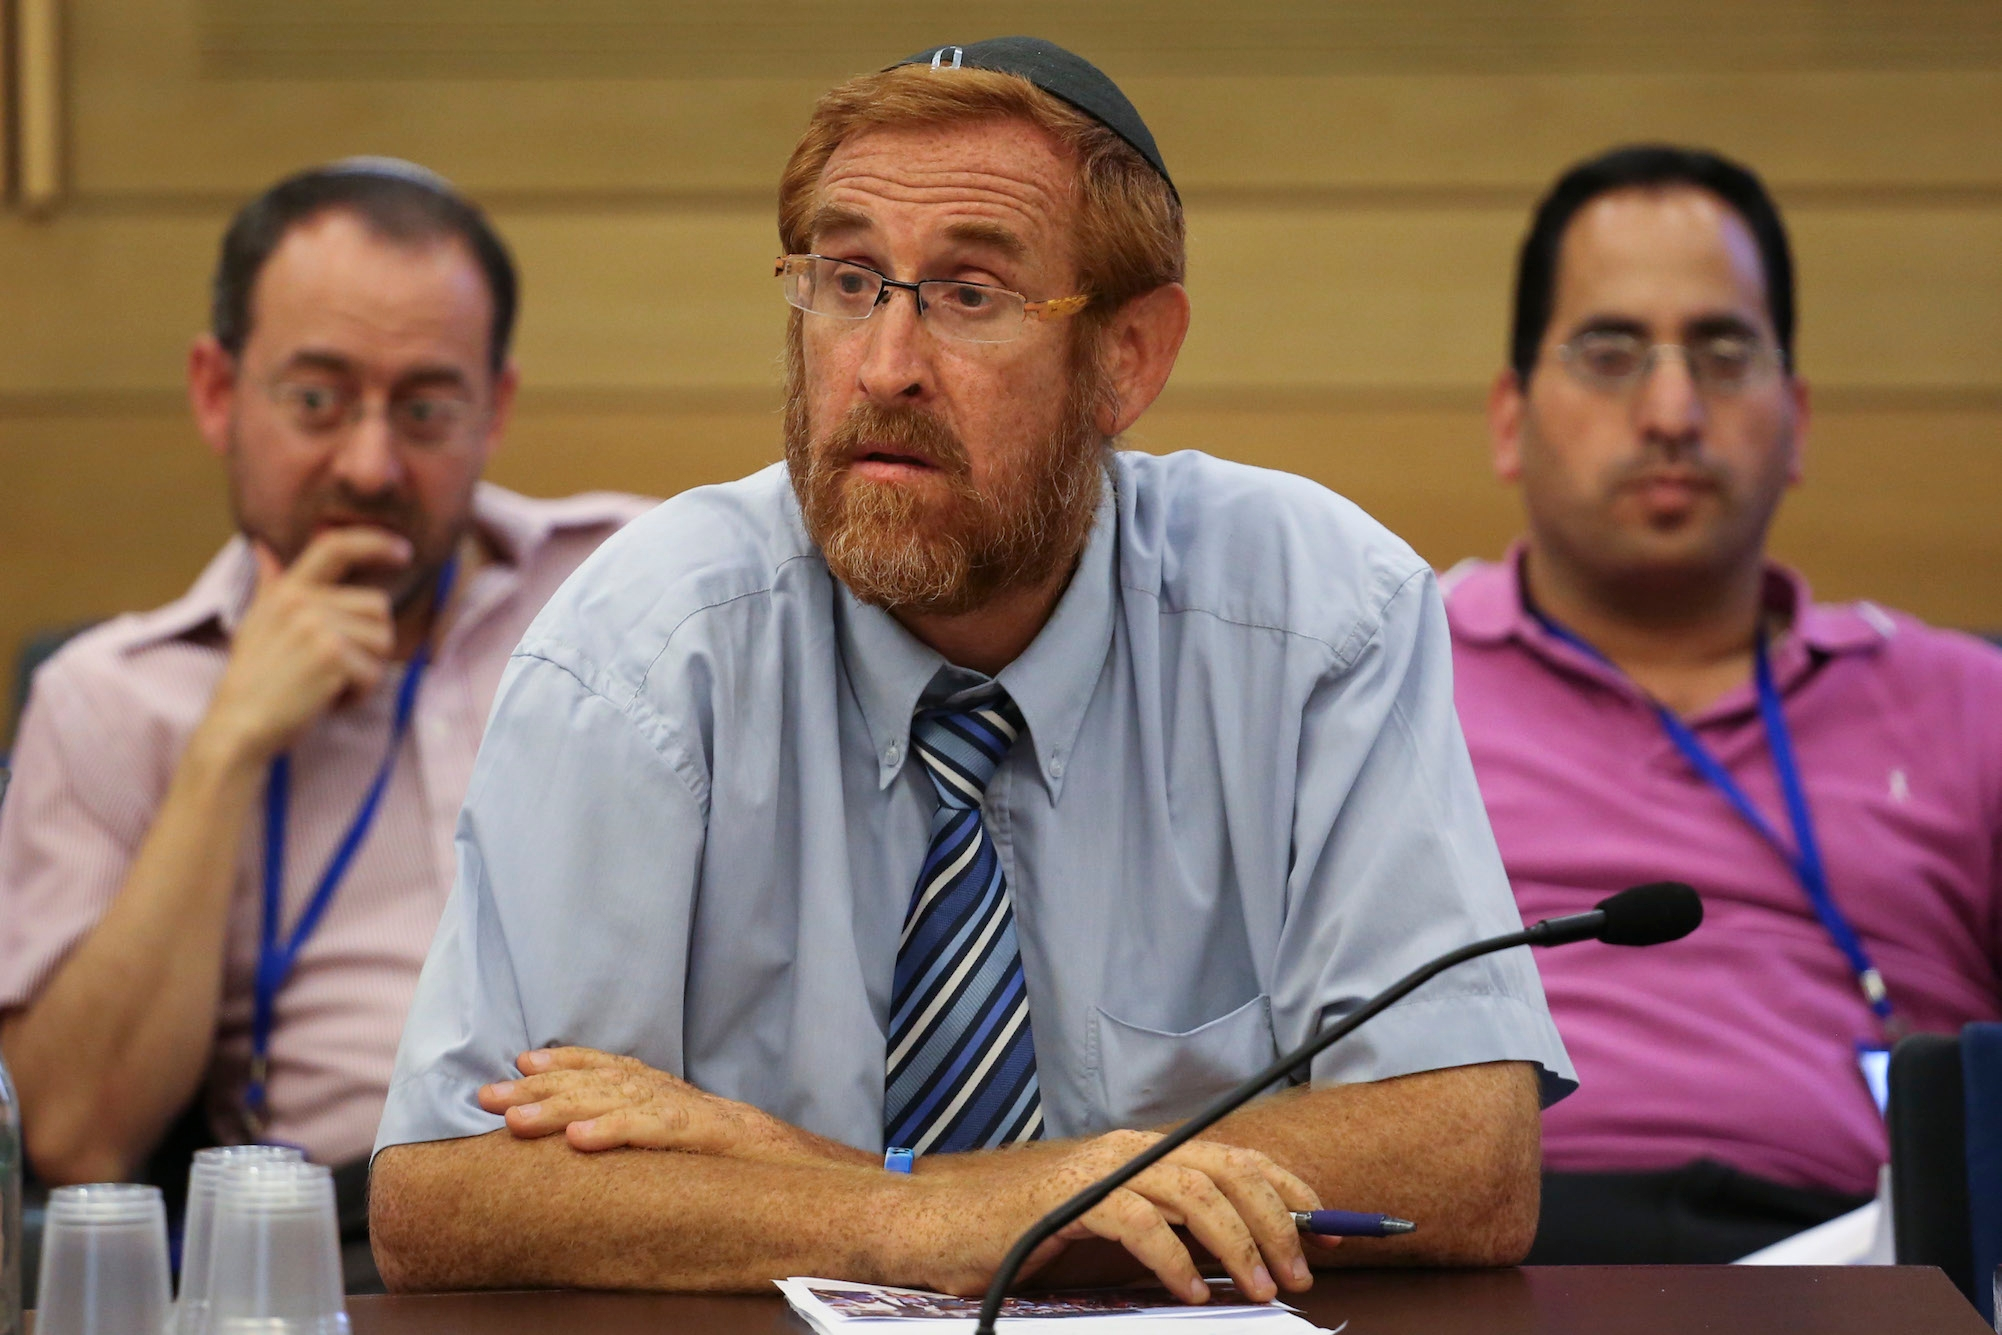 Right-wing activist, Yehuda Glick, seen during the Interior Affairs Committee meeting discussing visiting rules to the Dome of the Rock or Temple Mount compound, at the Knesset, on June 23, 2014. (Hadas Parush/Flash90)